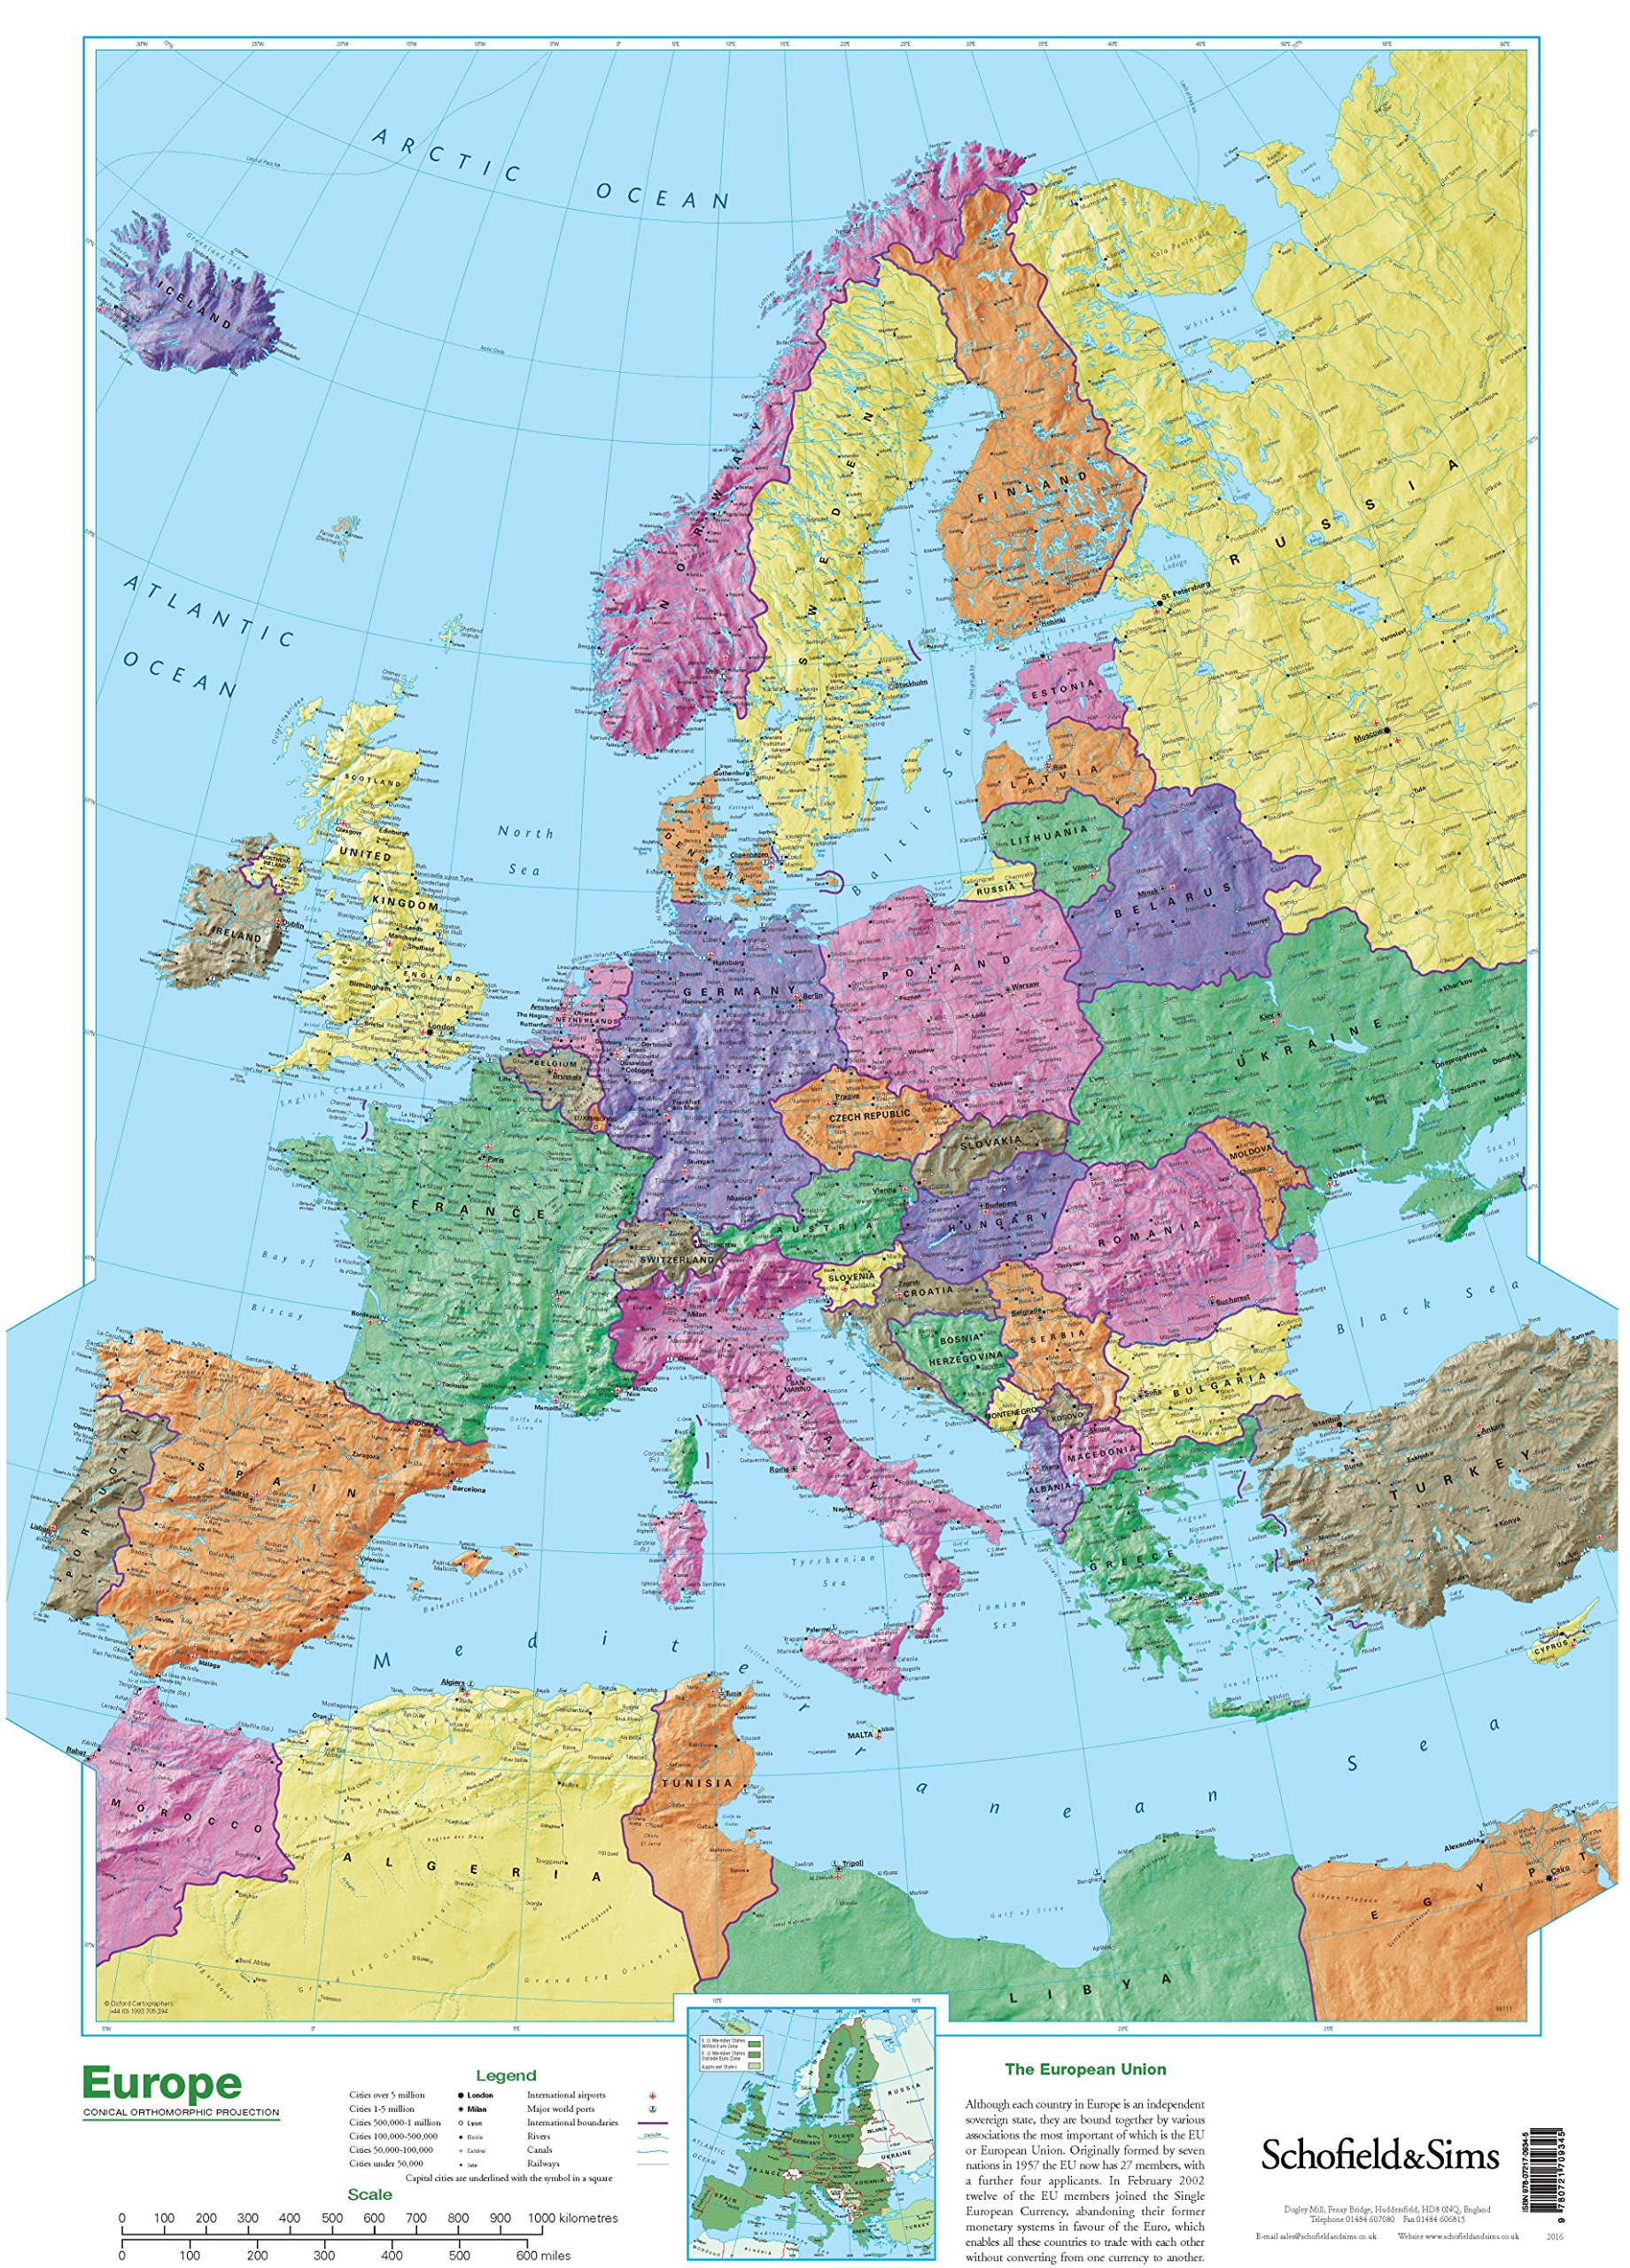 Map If Europe Map of Europe: Schofield & Sims: 9780721709345: Amazon.com: Books